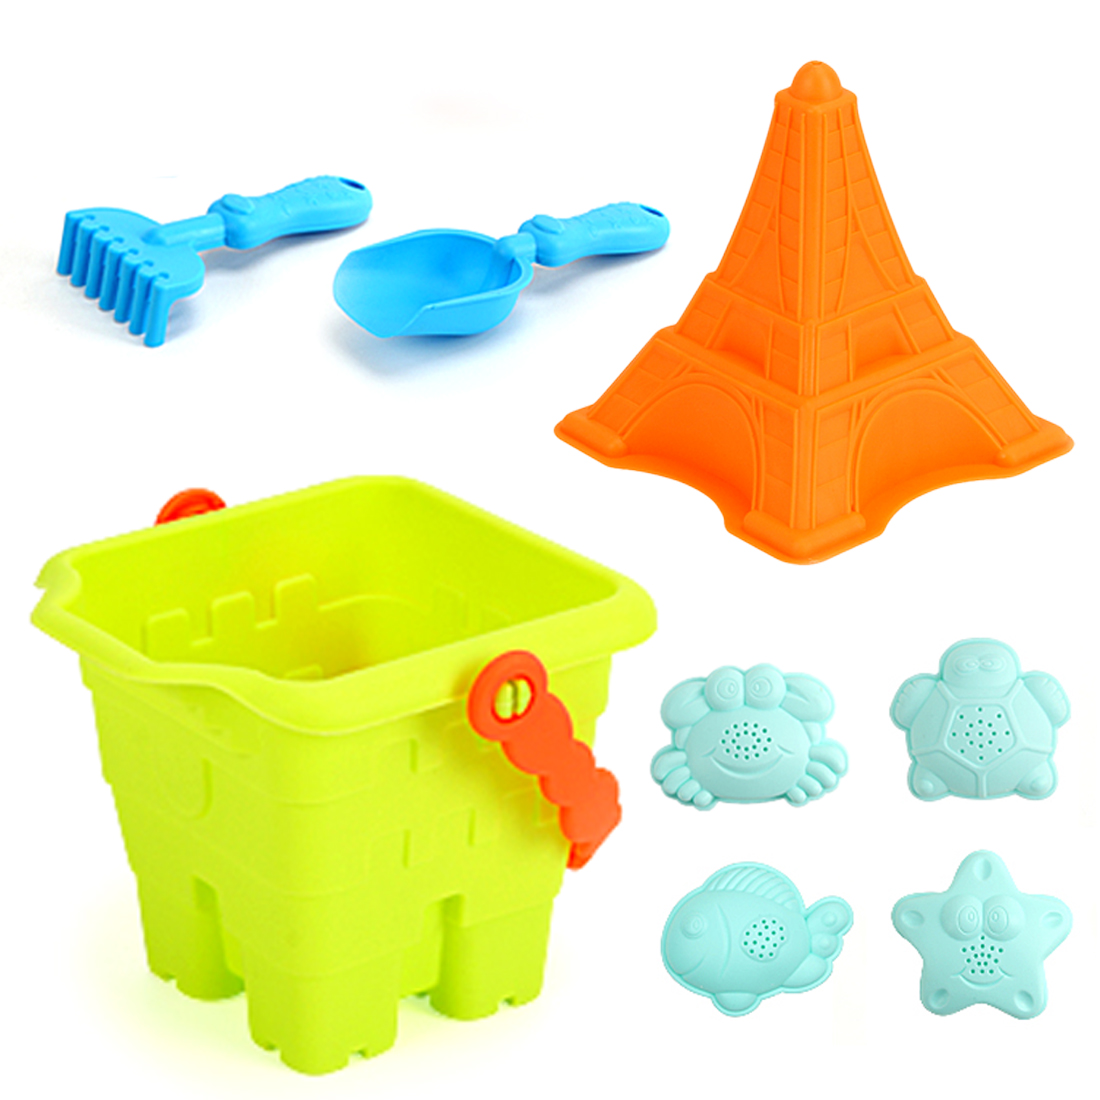 Soft Rubber Beach Sand Outdoor Toys For Children Beach Toys Set With Bucket Shovel And Rake For Kids - Colorful